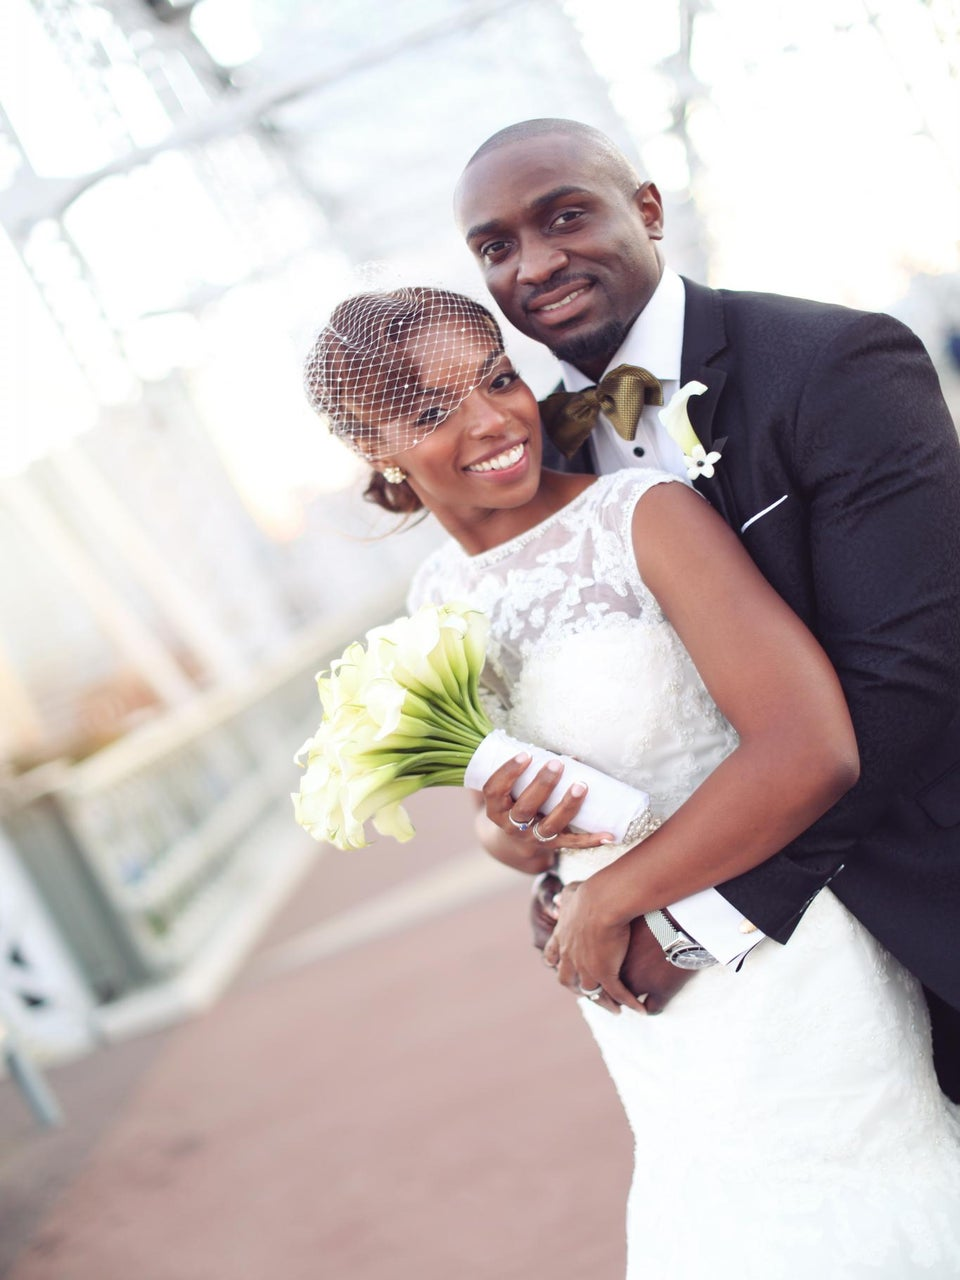 Bridal Bliss: Hermica and Seyi's Nashville Wedding